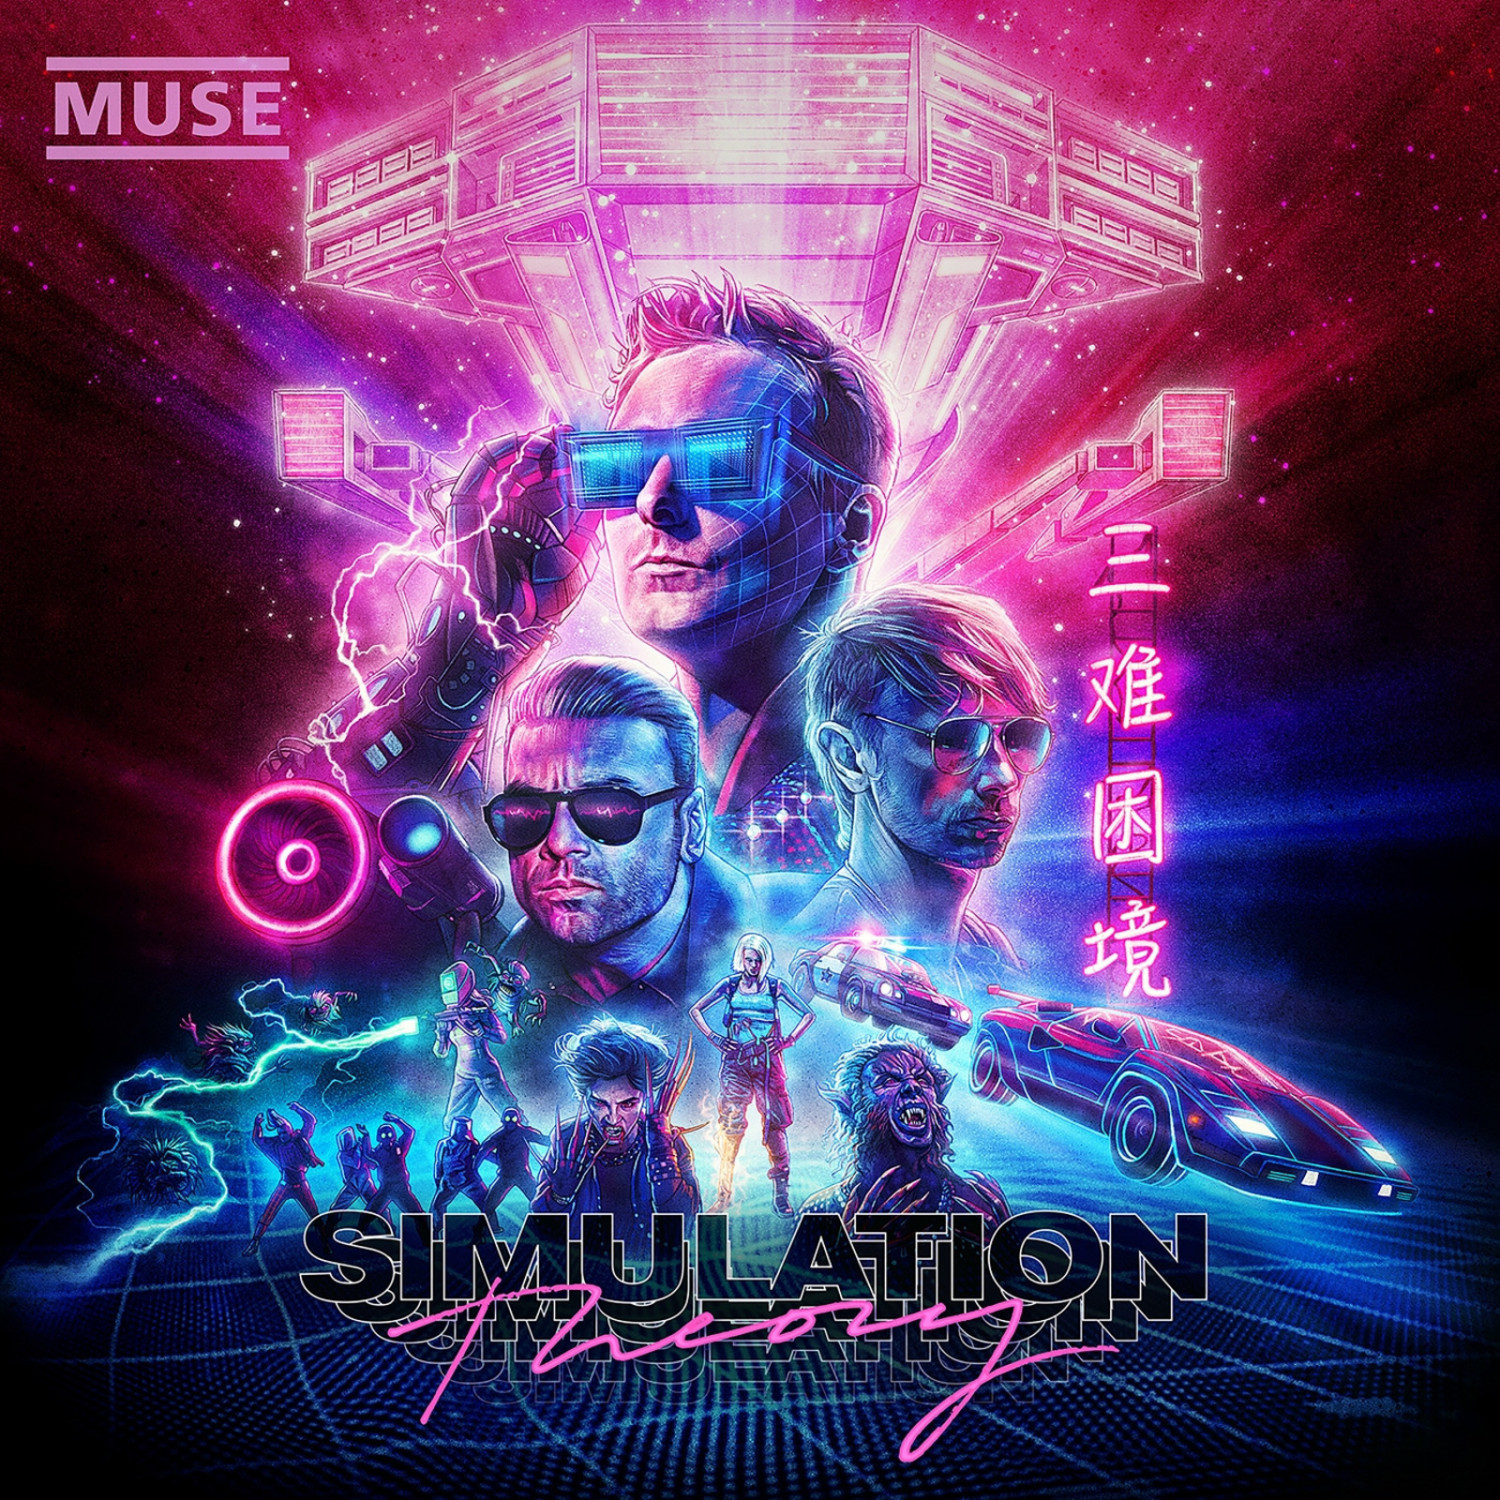 Muse - Simulation Theory (Deluxe Edition) (CD)